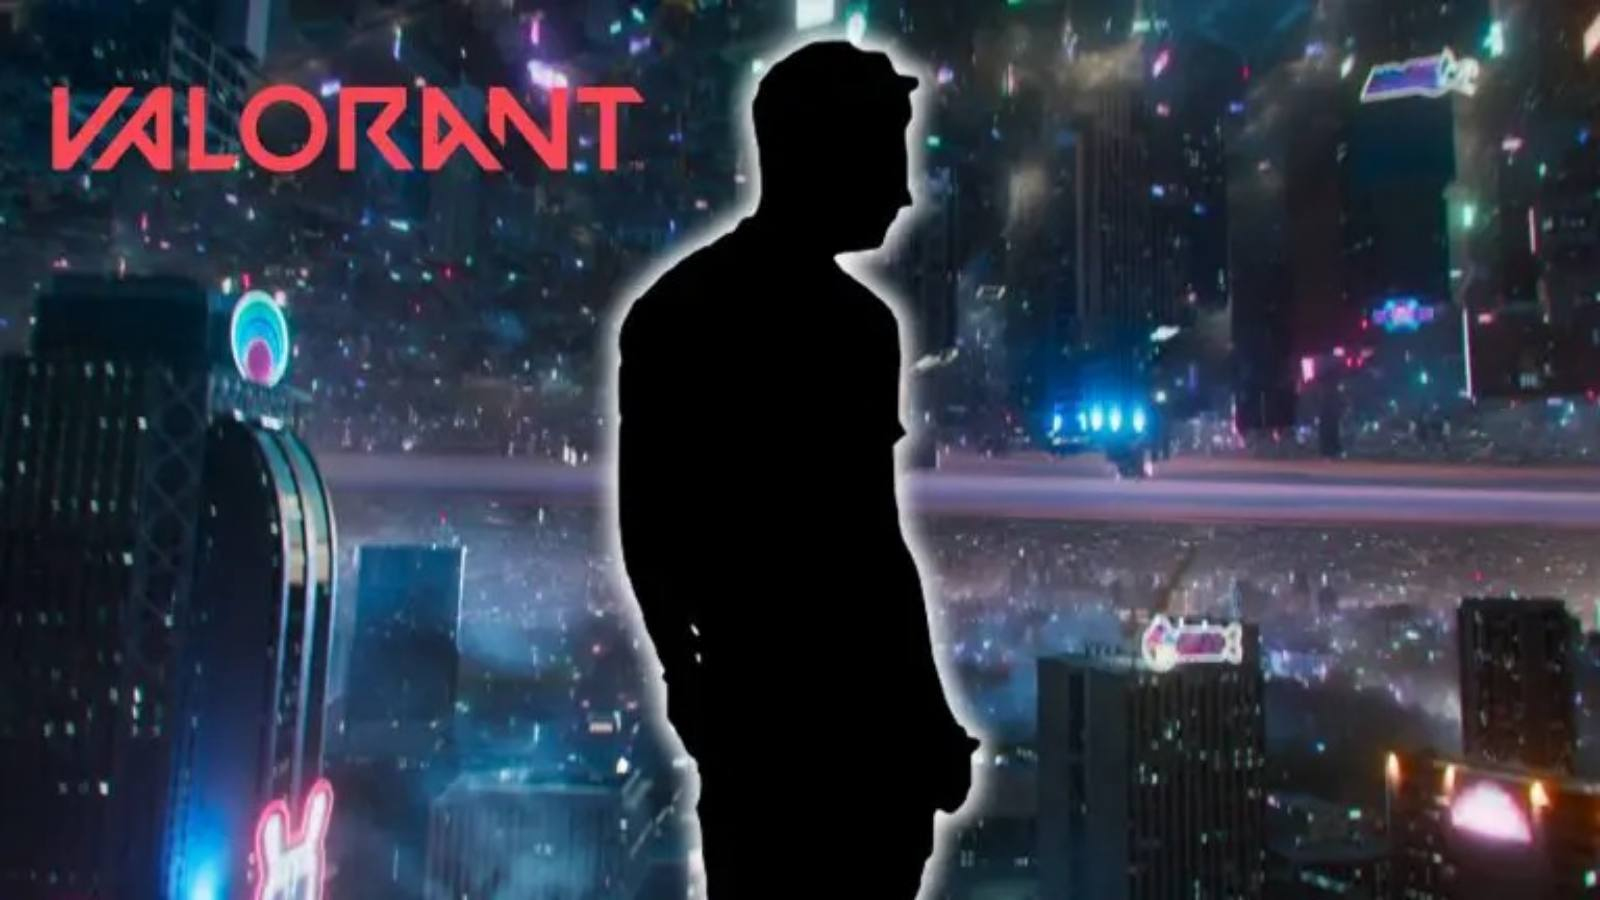 Valorant New Leaks: 18th Agent and Magepunk 2.0 Bundle Release Hinted